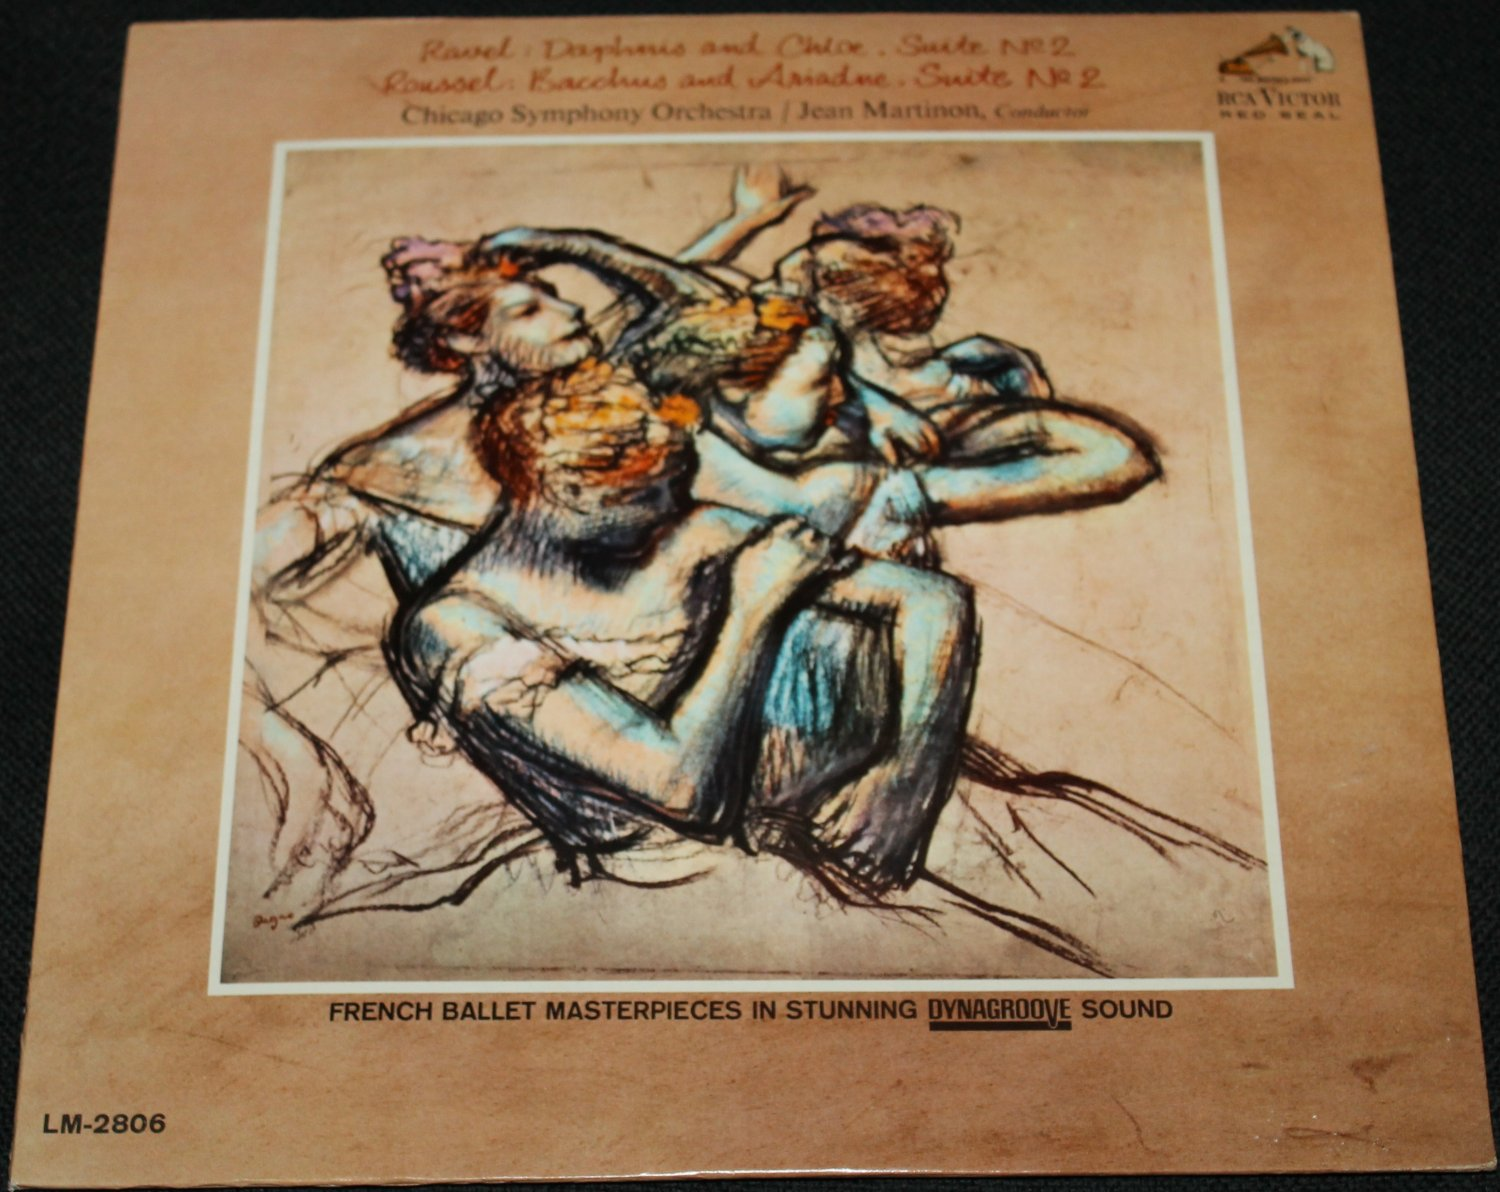 Ravel Daphnis and Chloe Roussel Bachus and Ariadne - Chicago Symphony Orchestra Jean Martinon